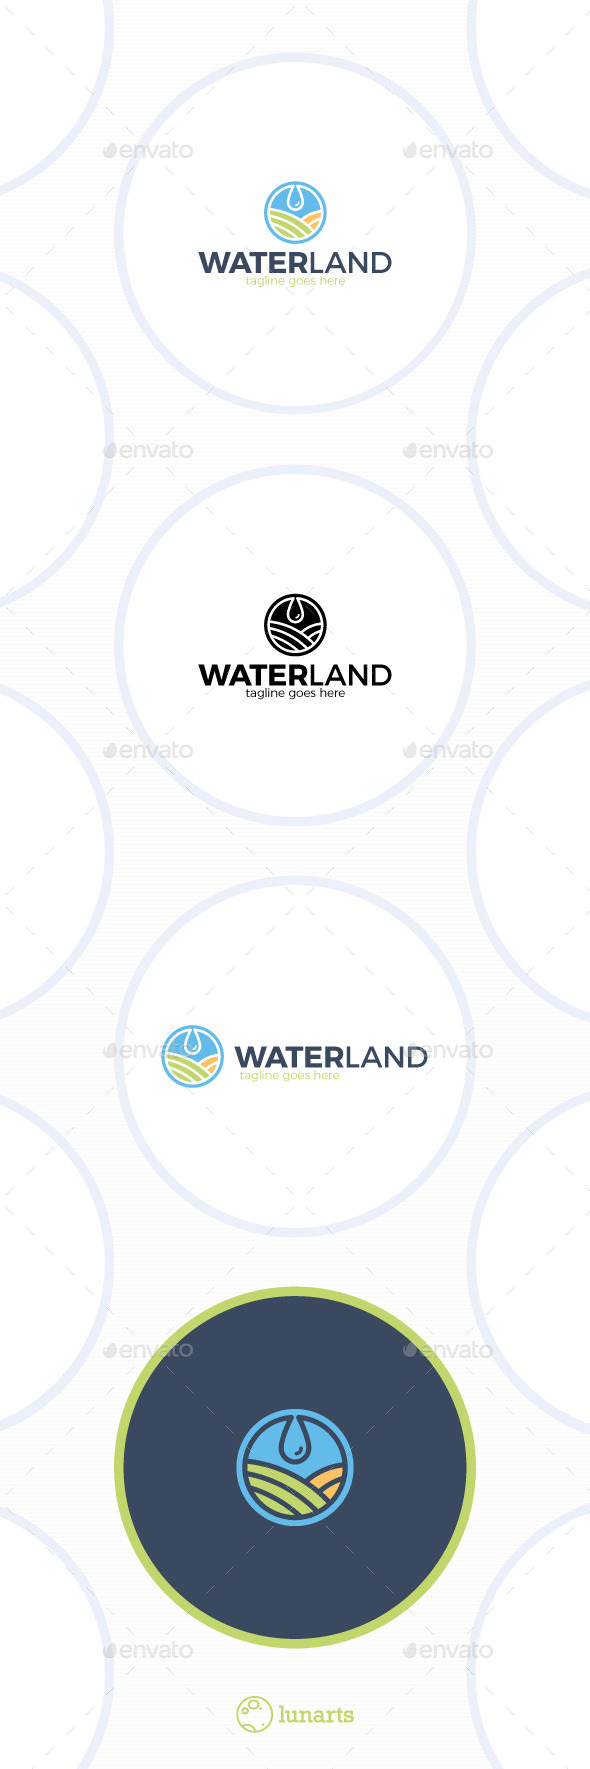 Water Land Logo - Drop Field - Nature Logo Templates